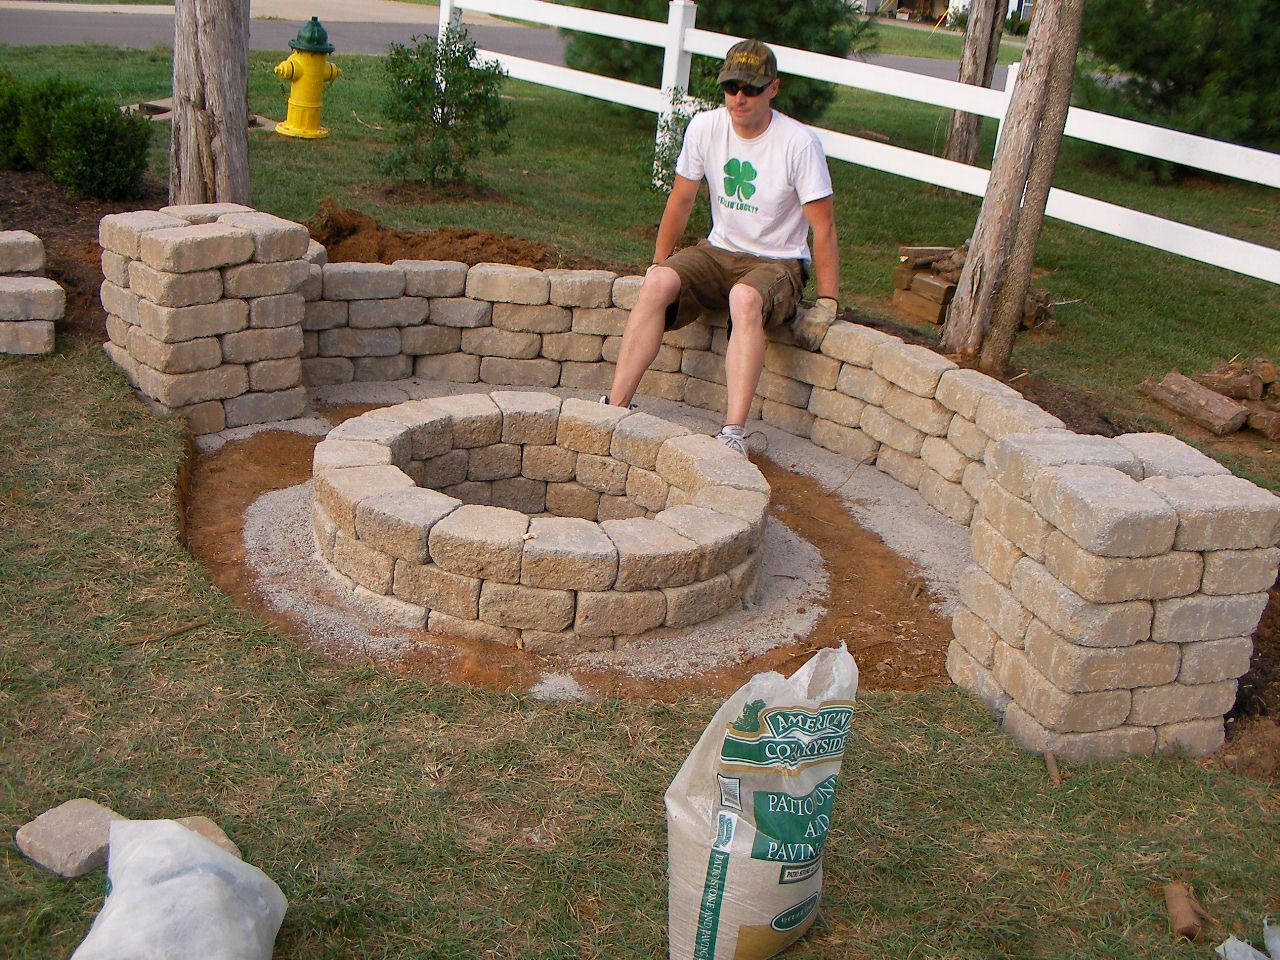 Best ideas about Simple Backyard Fire Pit Ideas . Save or Pin Easy Backyard Fire Pit Designs Now.